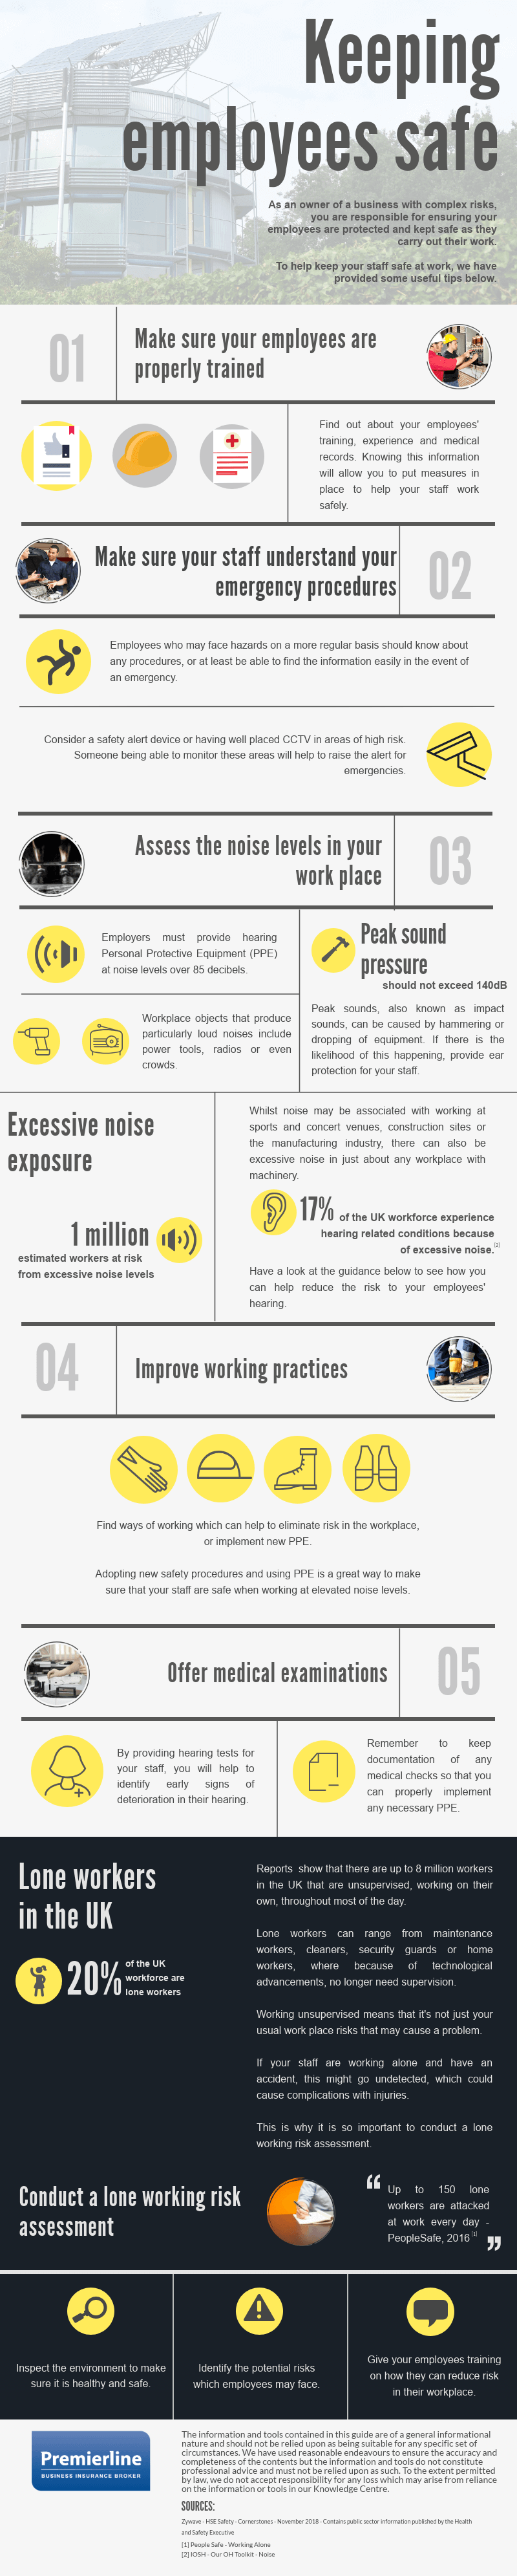 health and safety in the industrial sector infographic